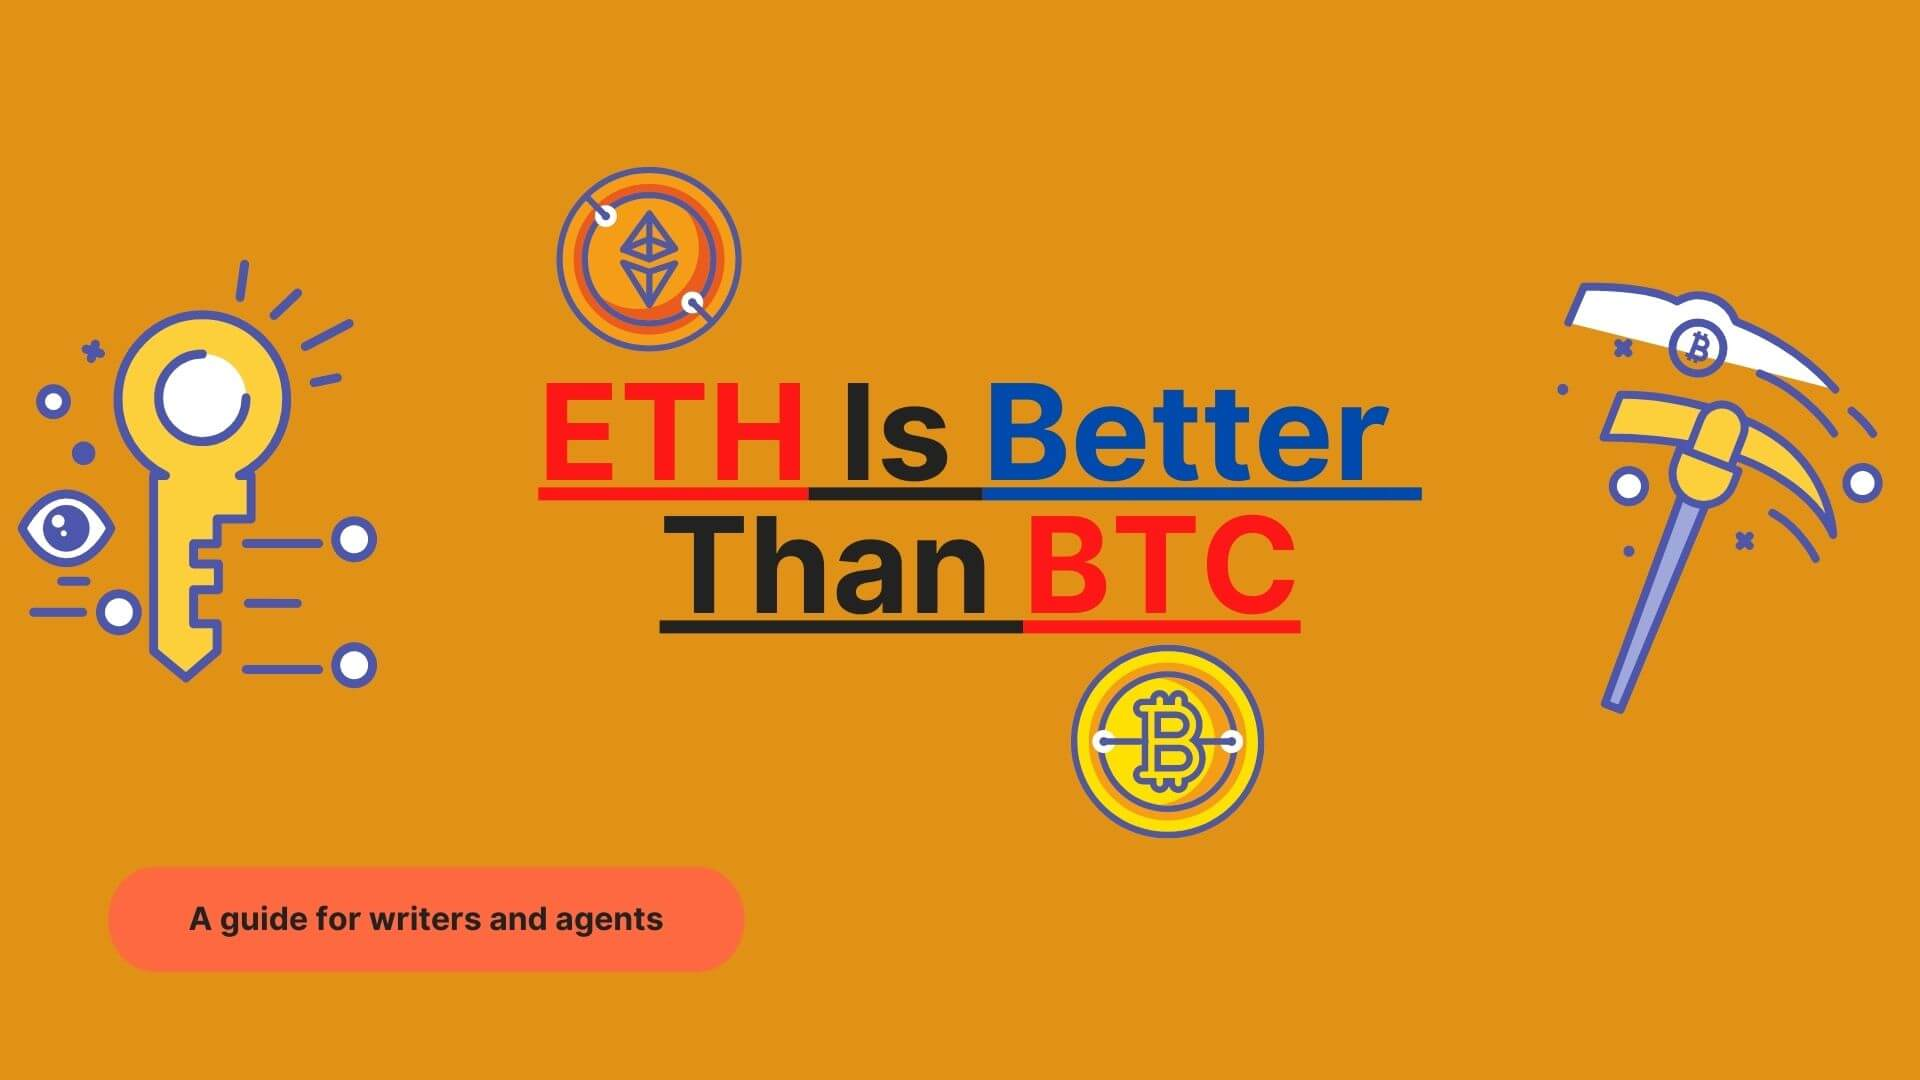 ETH Is Better Than BTC